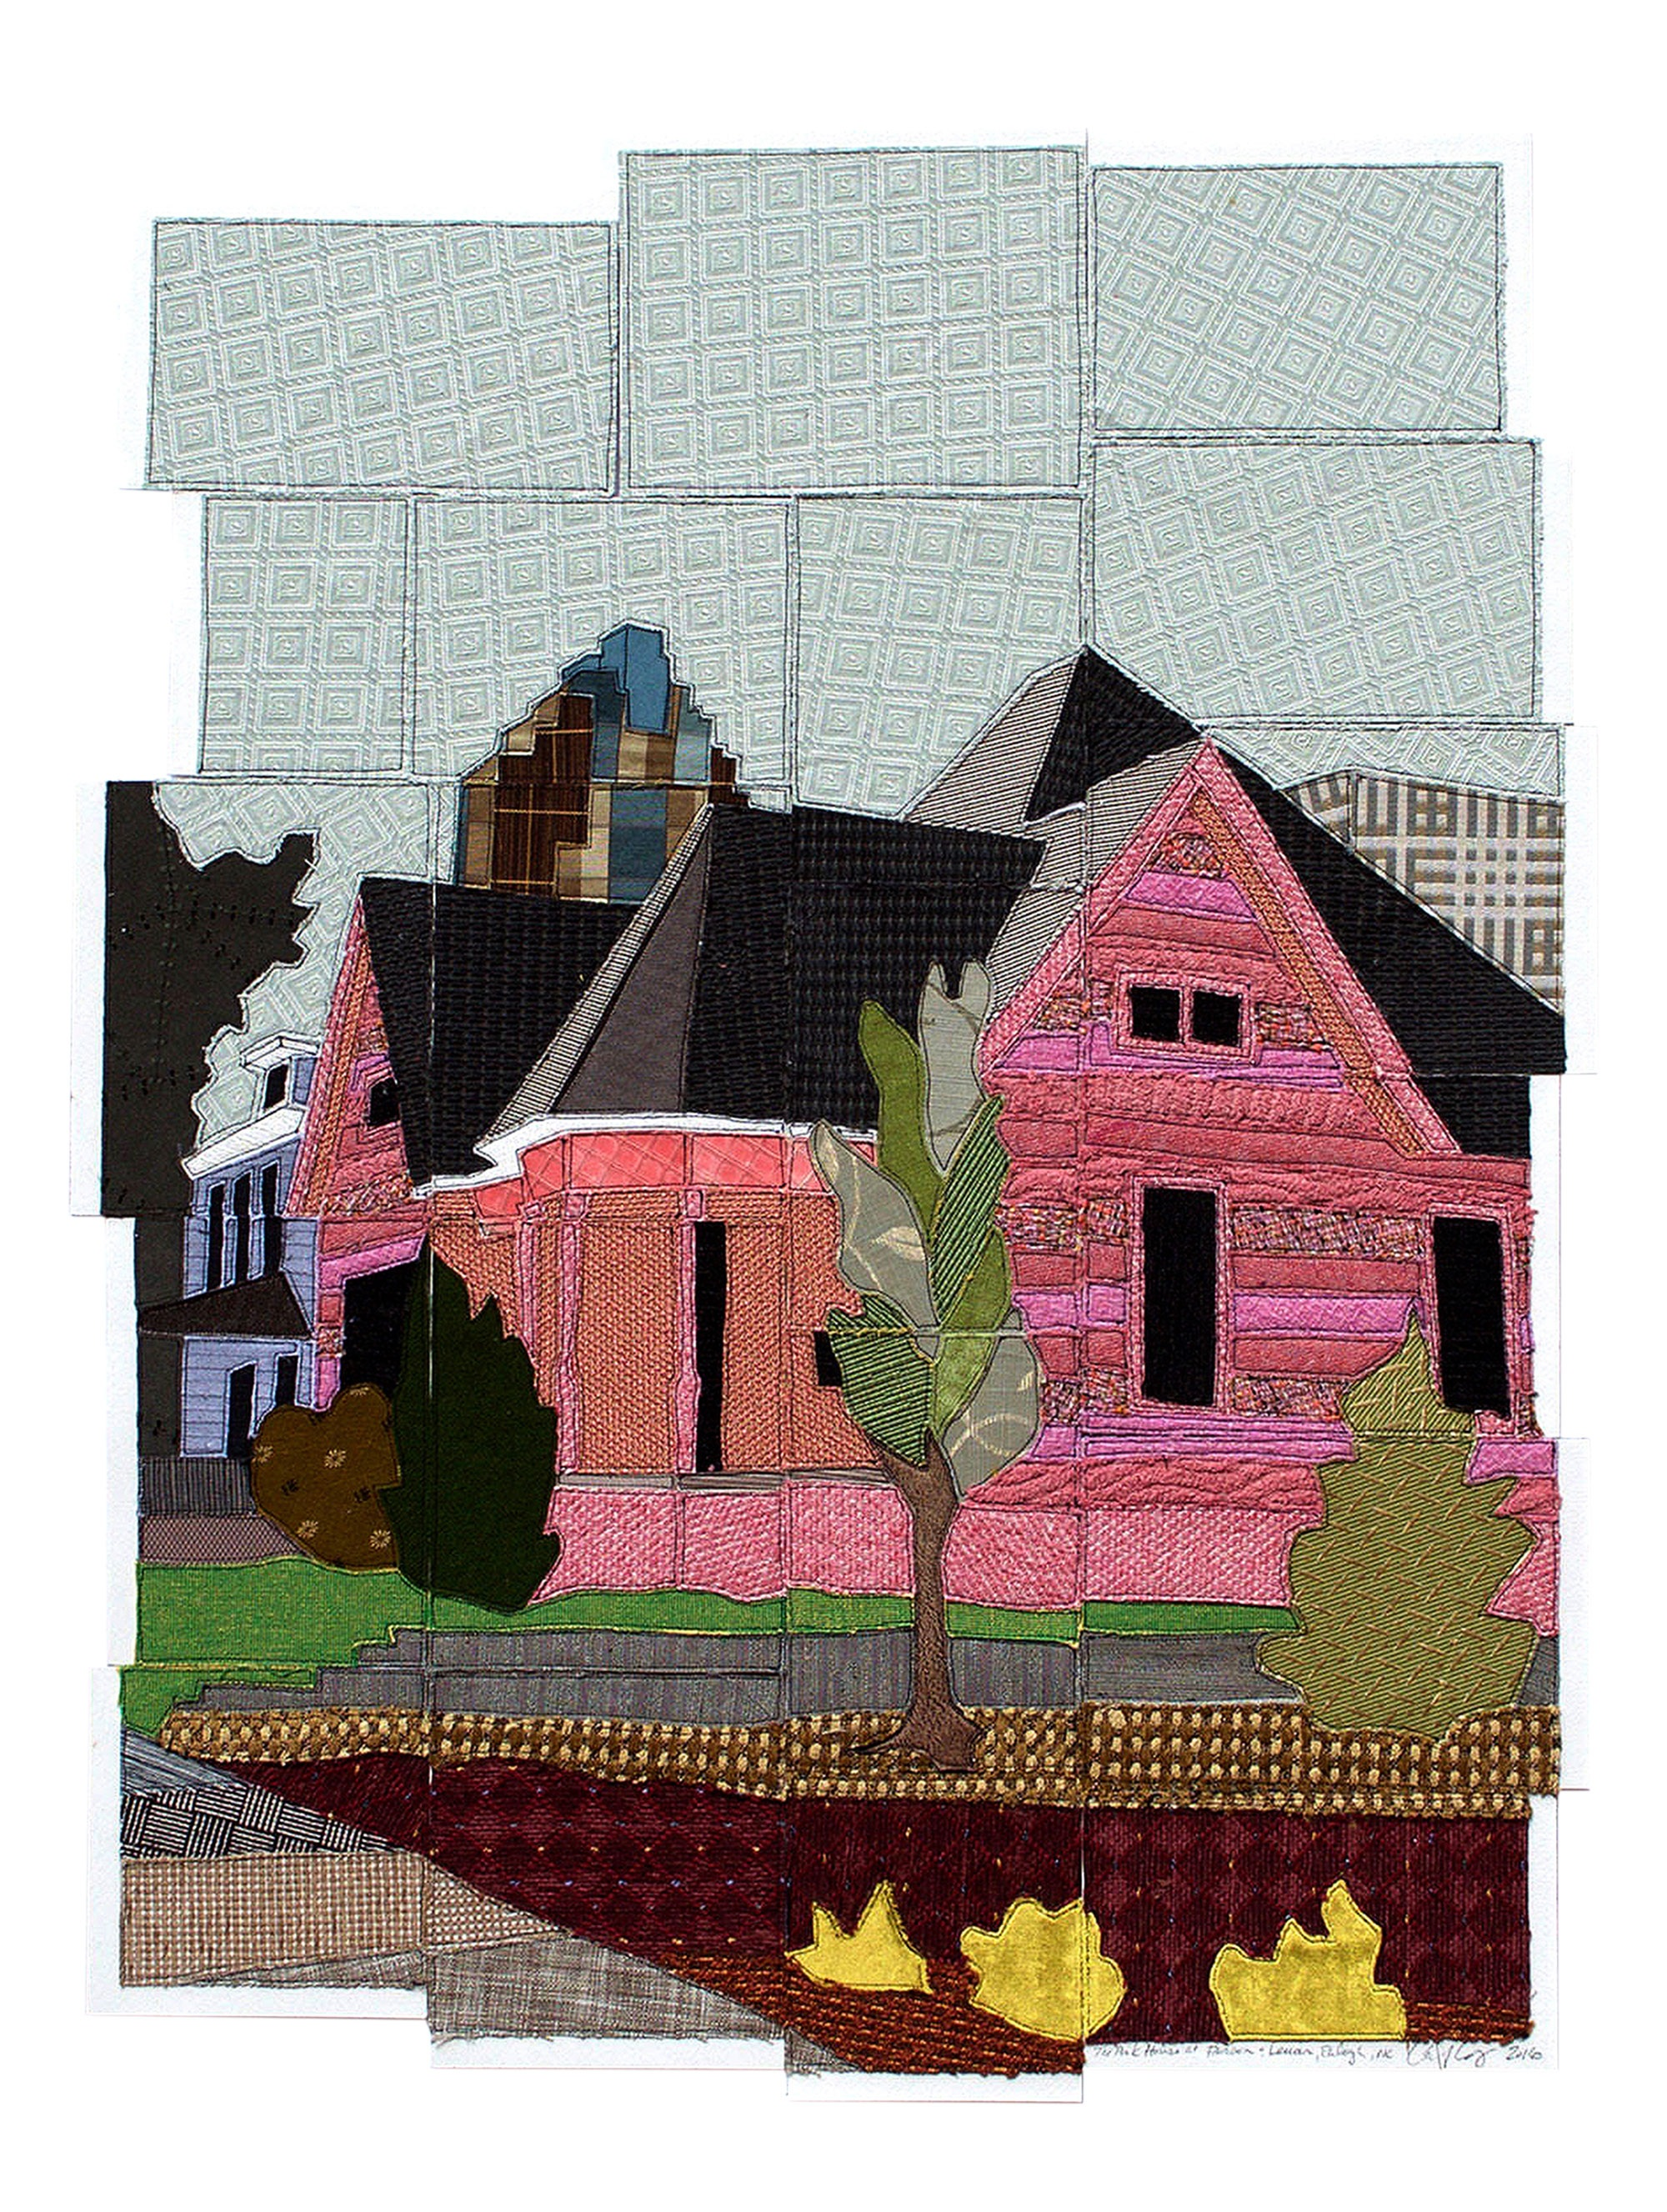 That Pink House at Person & Lenoir, Raleigh, NC, 2016